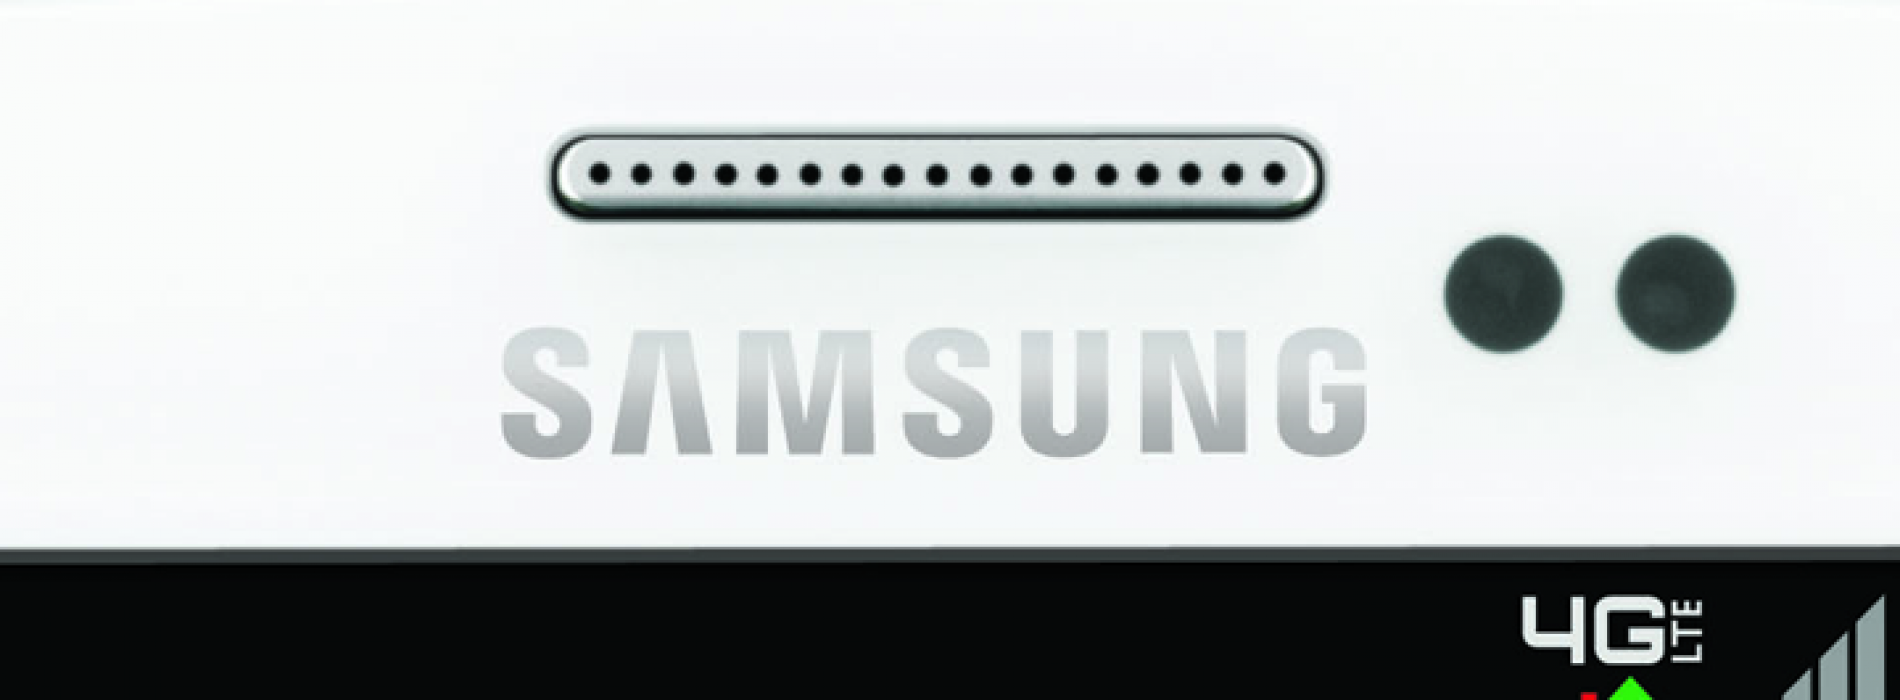 Samsung rumored to intro GT-I8190 'Golden' in November